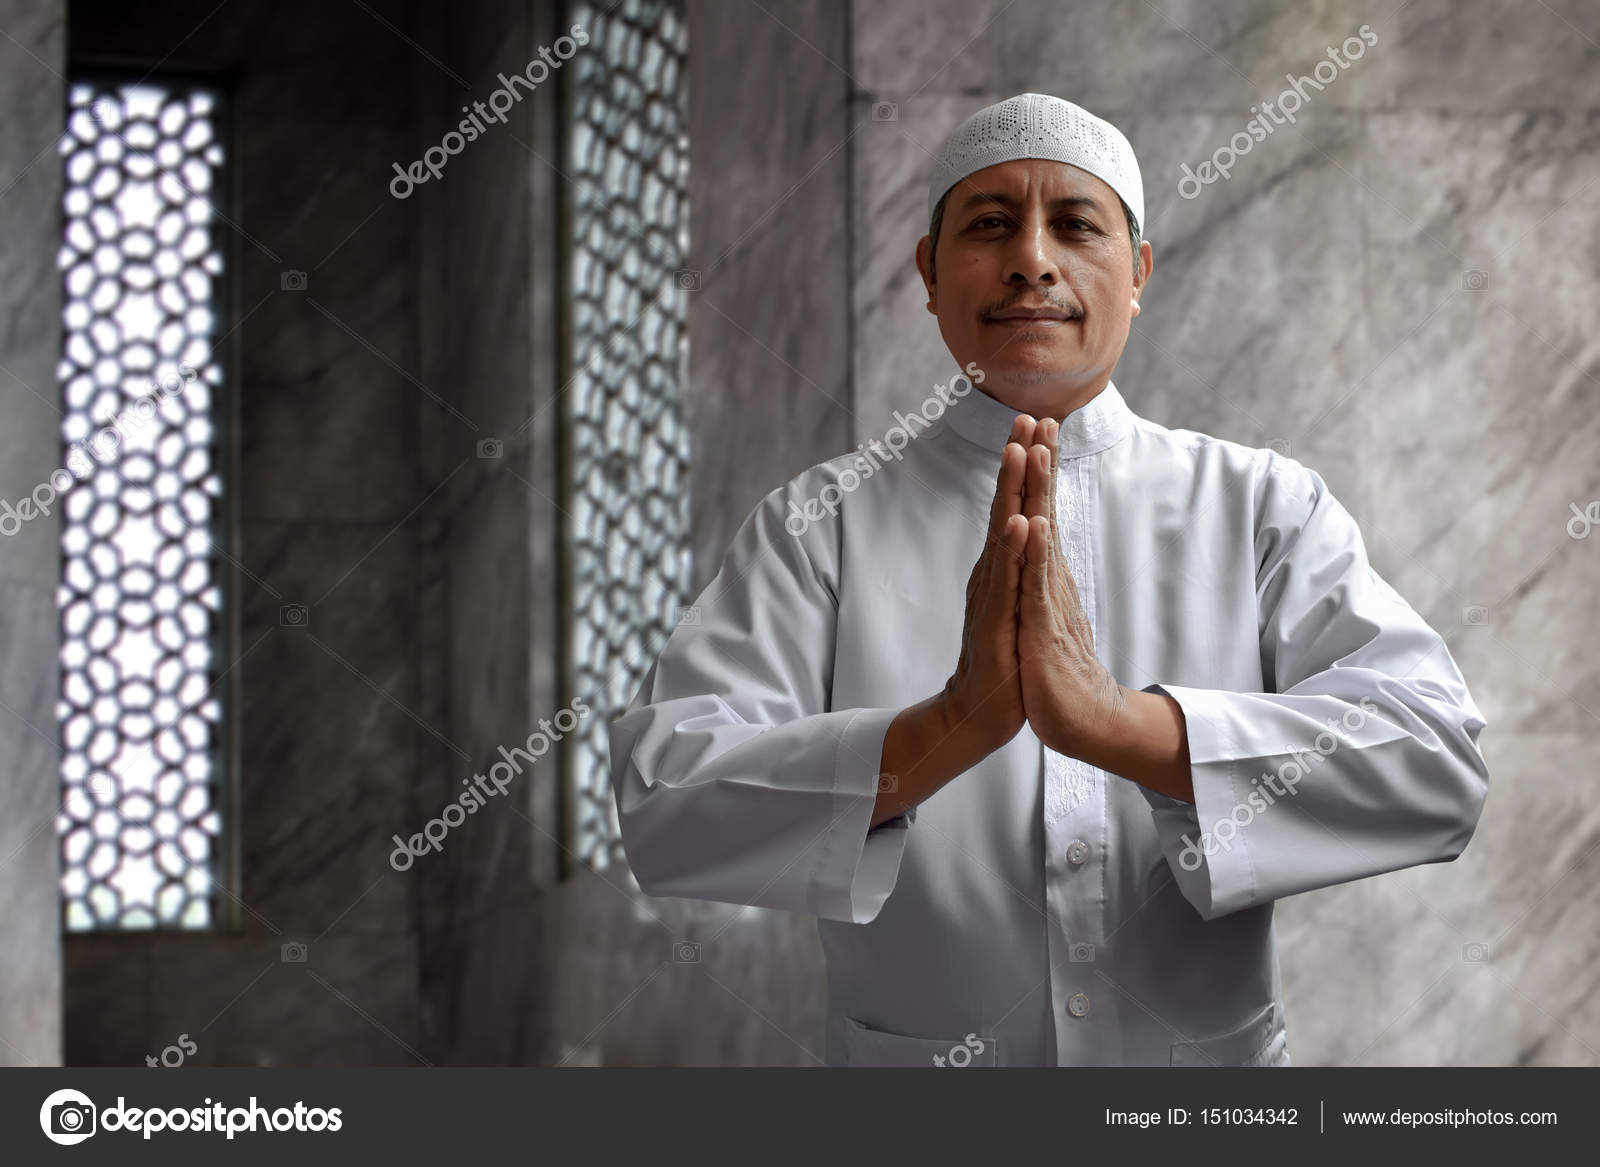 Old Muslim Man Smiling Stock Photo Fotokitas 151034342